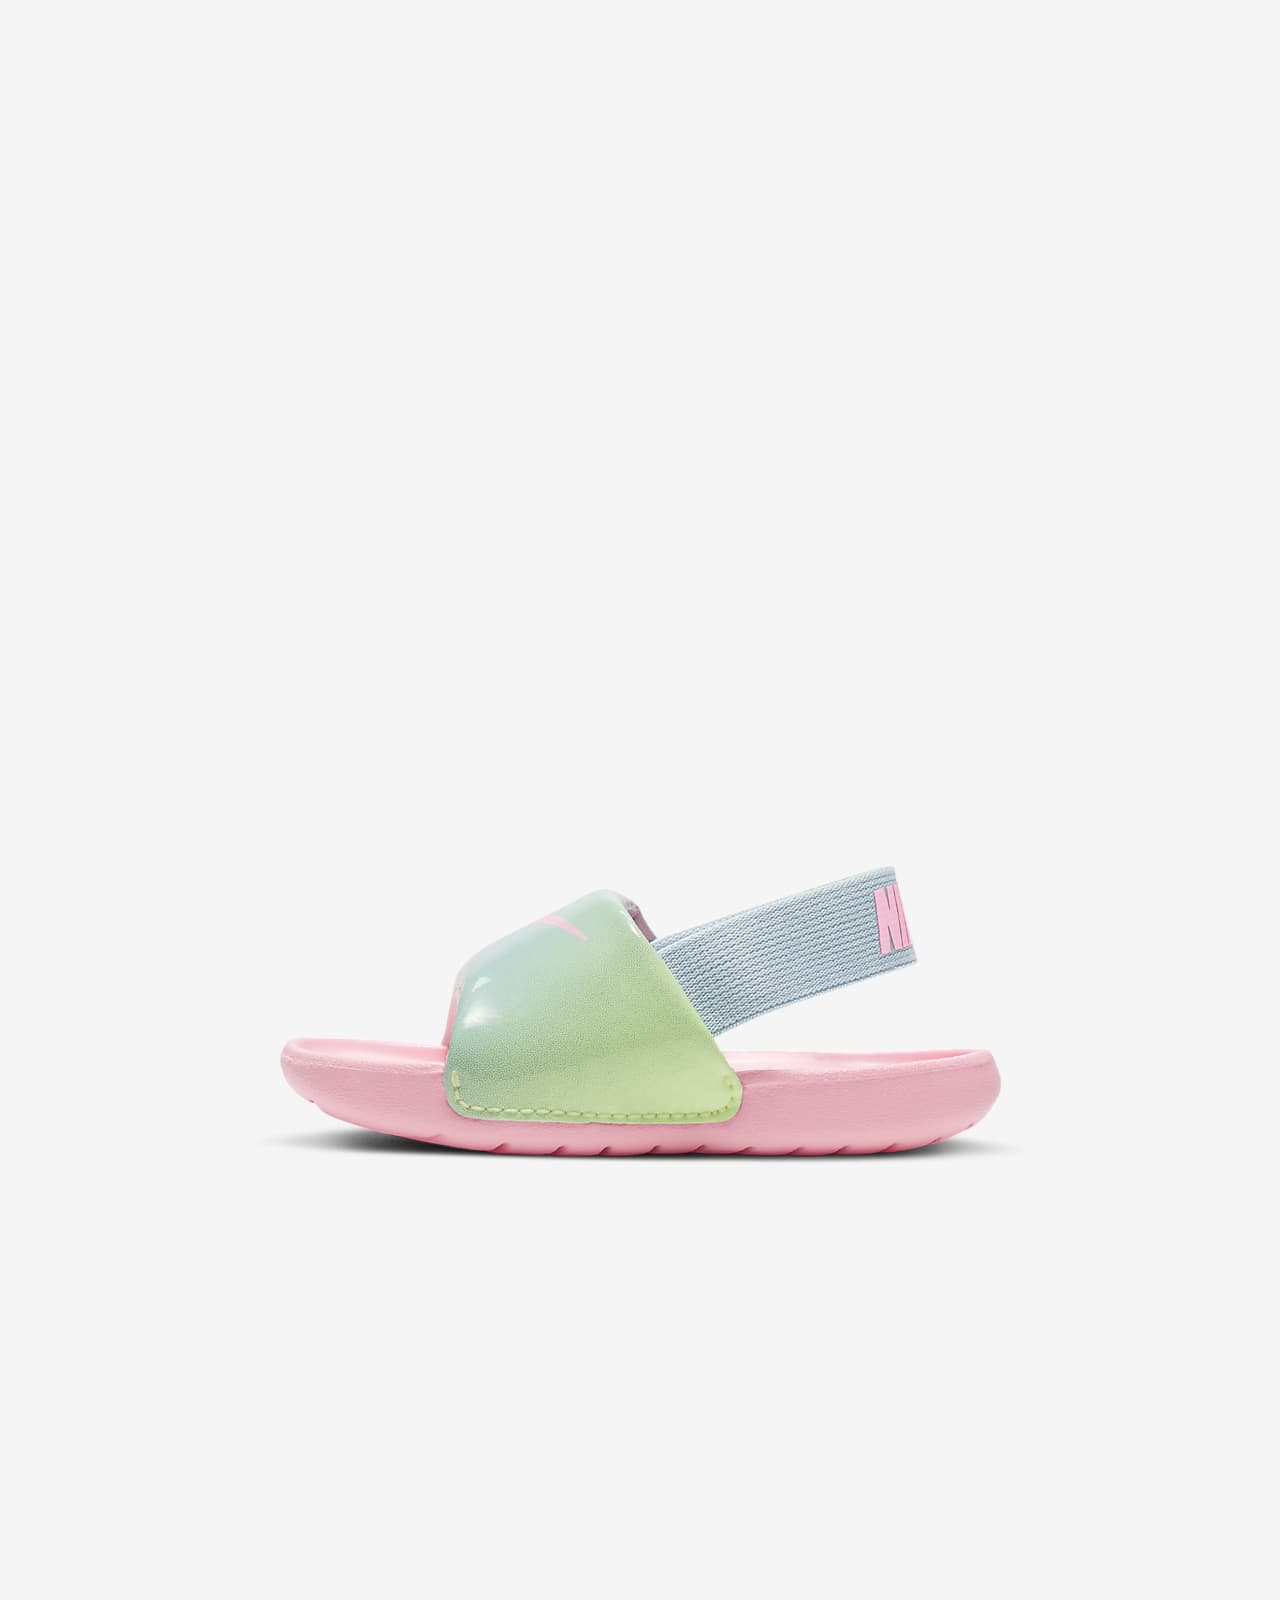 Nike Kawa SE Baby and Toddler Slide